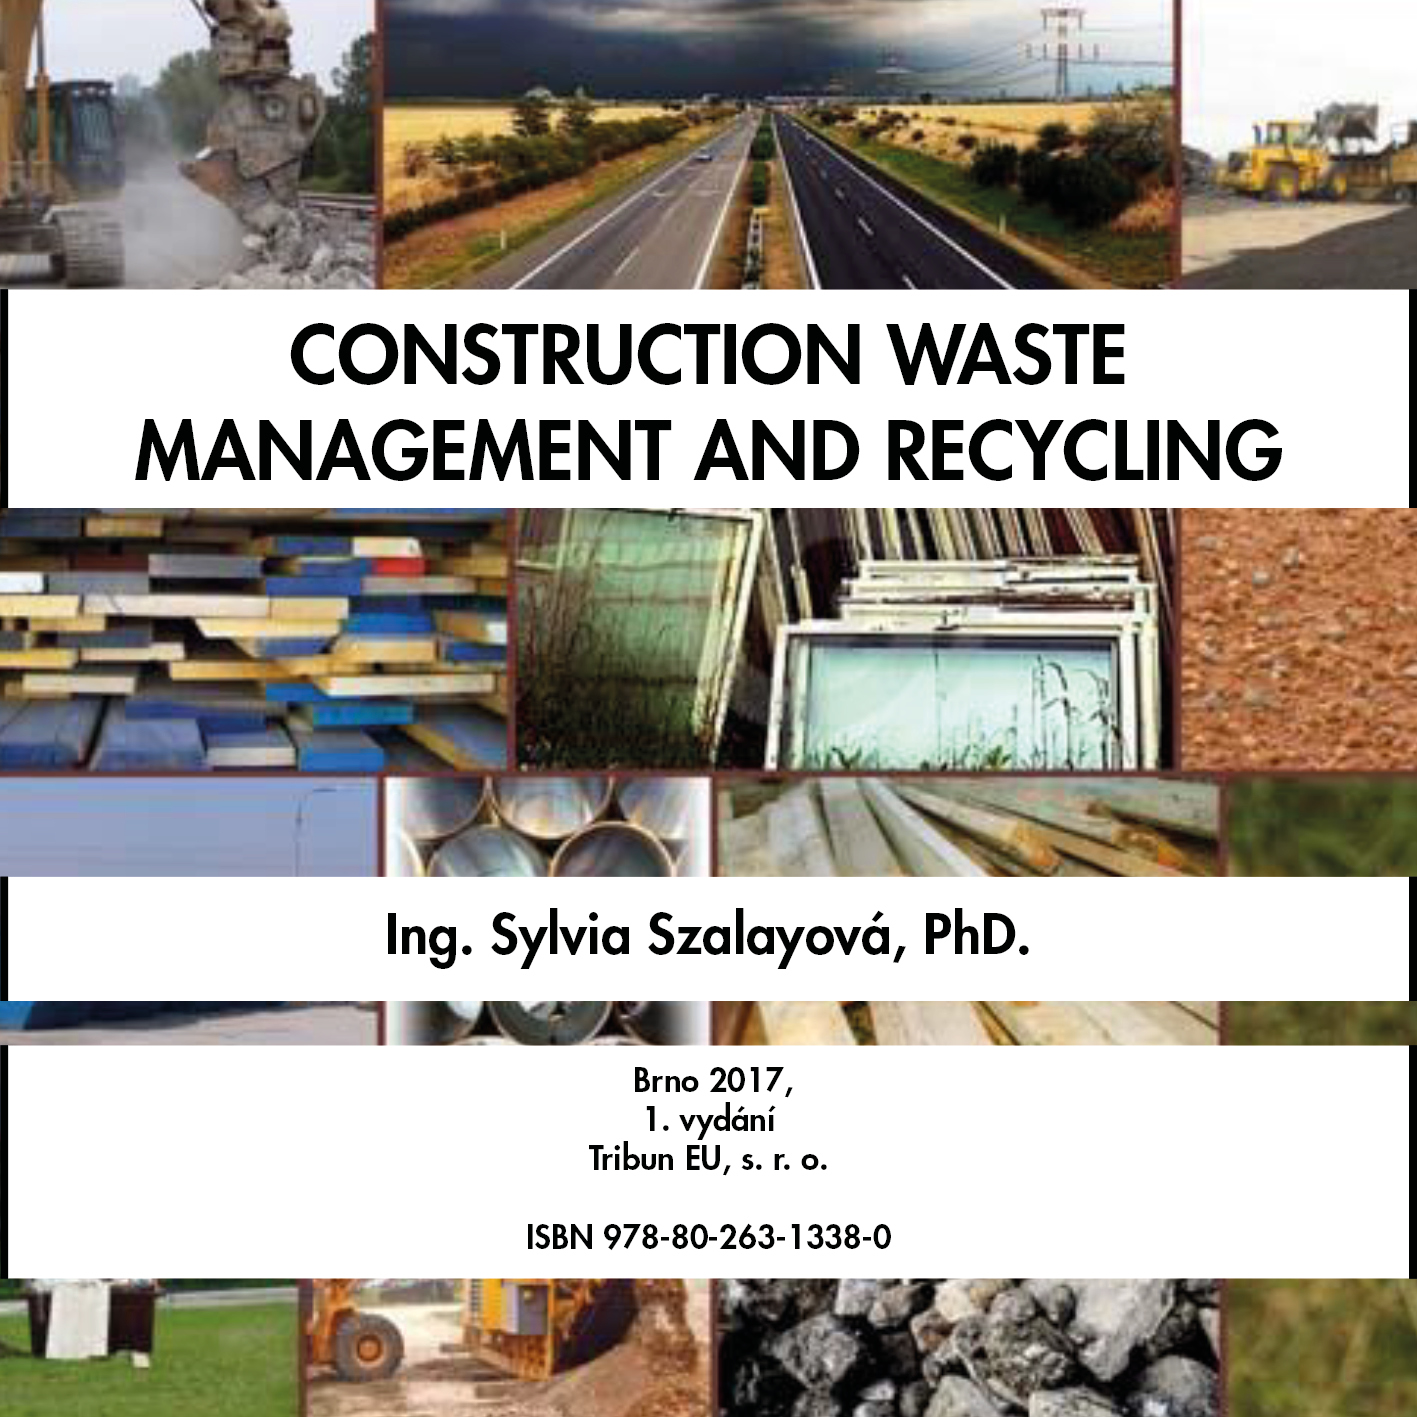 Construction waste management and recycling